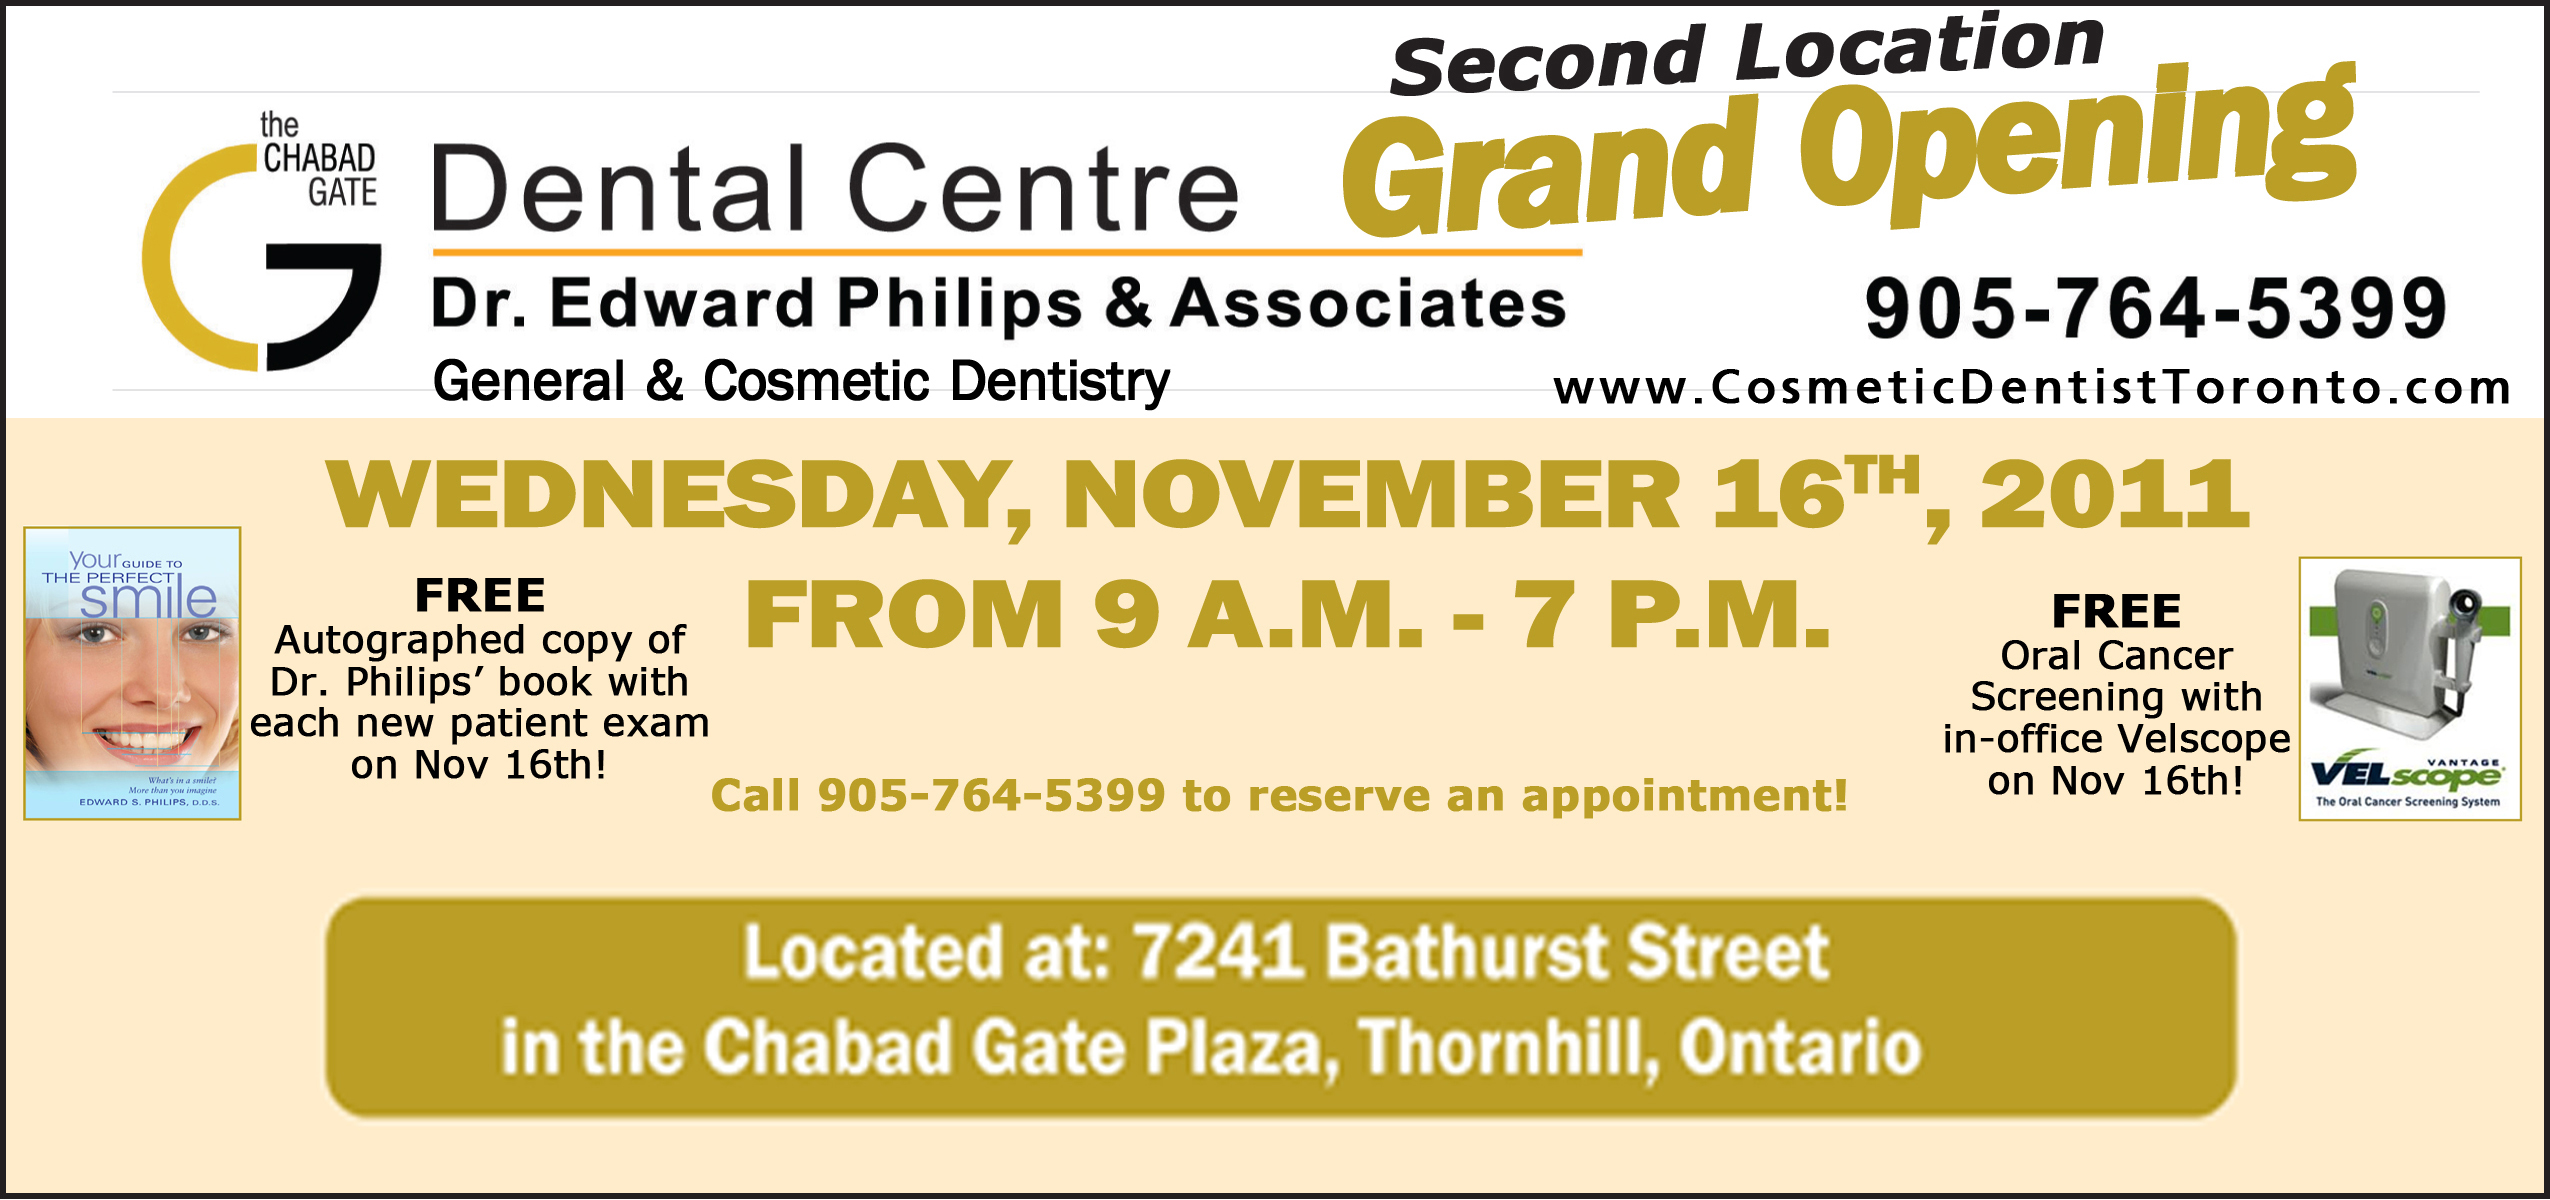 Cosmetic Dentist Toronto Dr Edward Phiips Chabad Gate Dental Center Thornhill Ontario